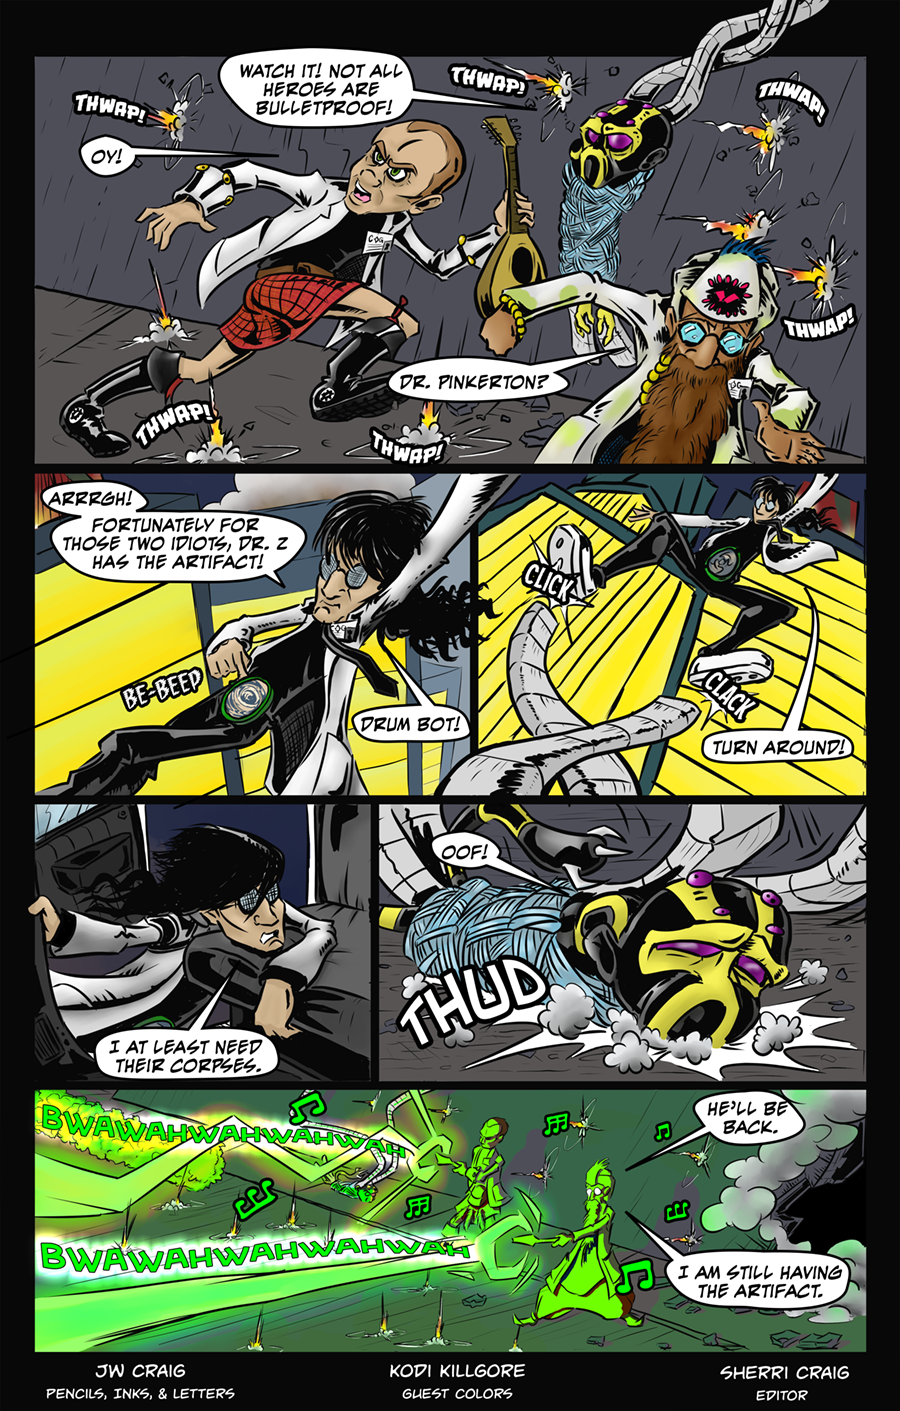 Page 23 With Colors by Guest Artist, Kodi Killgore